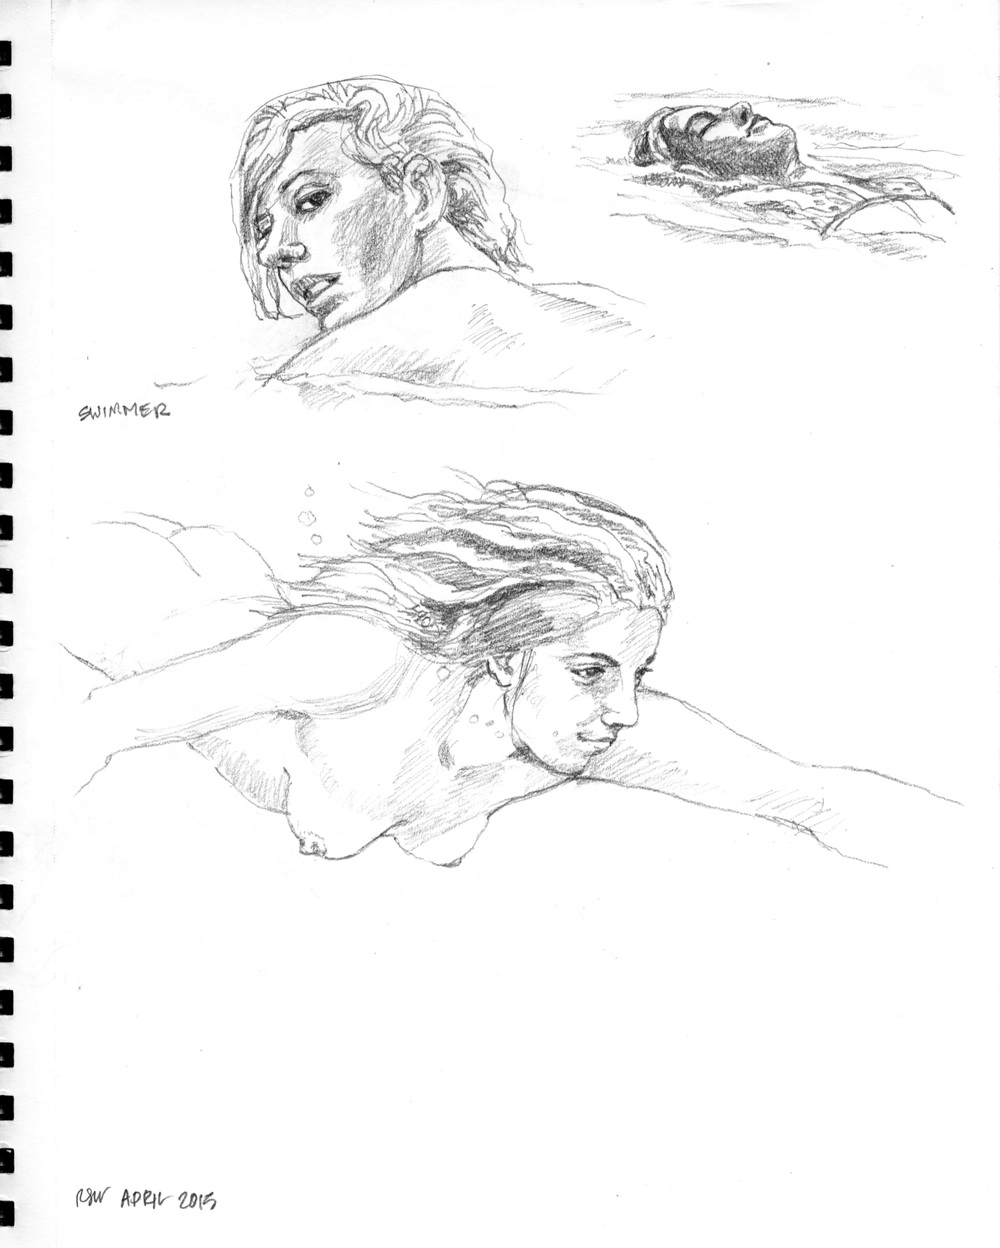 April May 2015 sketches